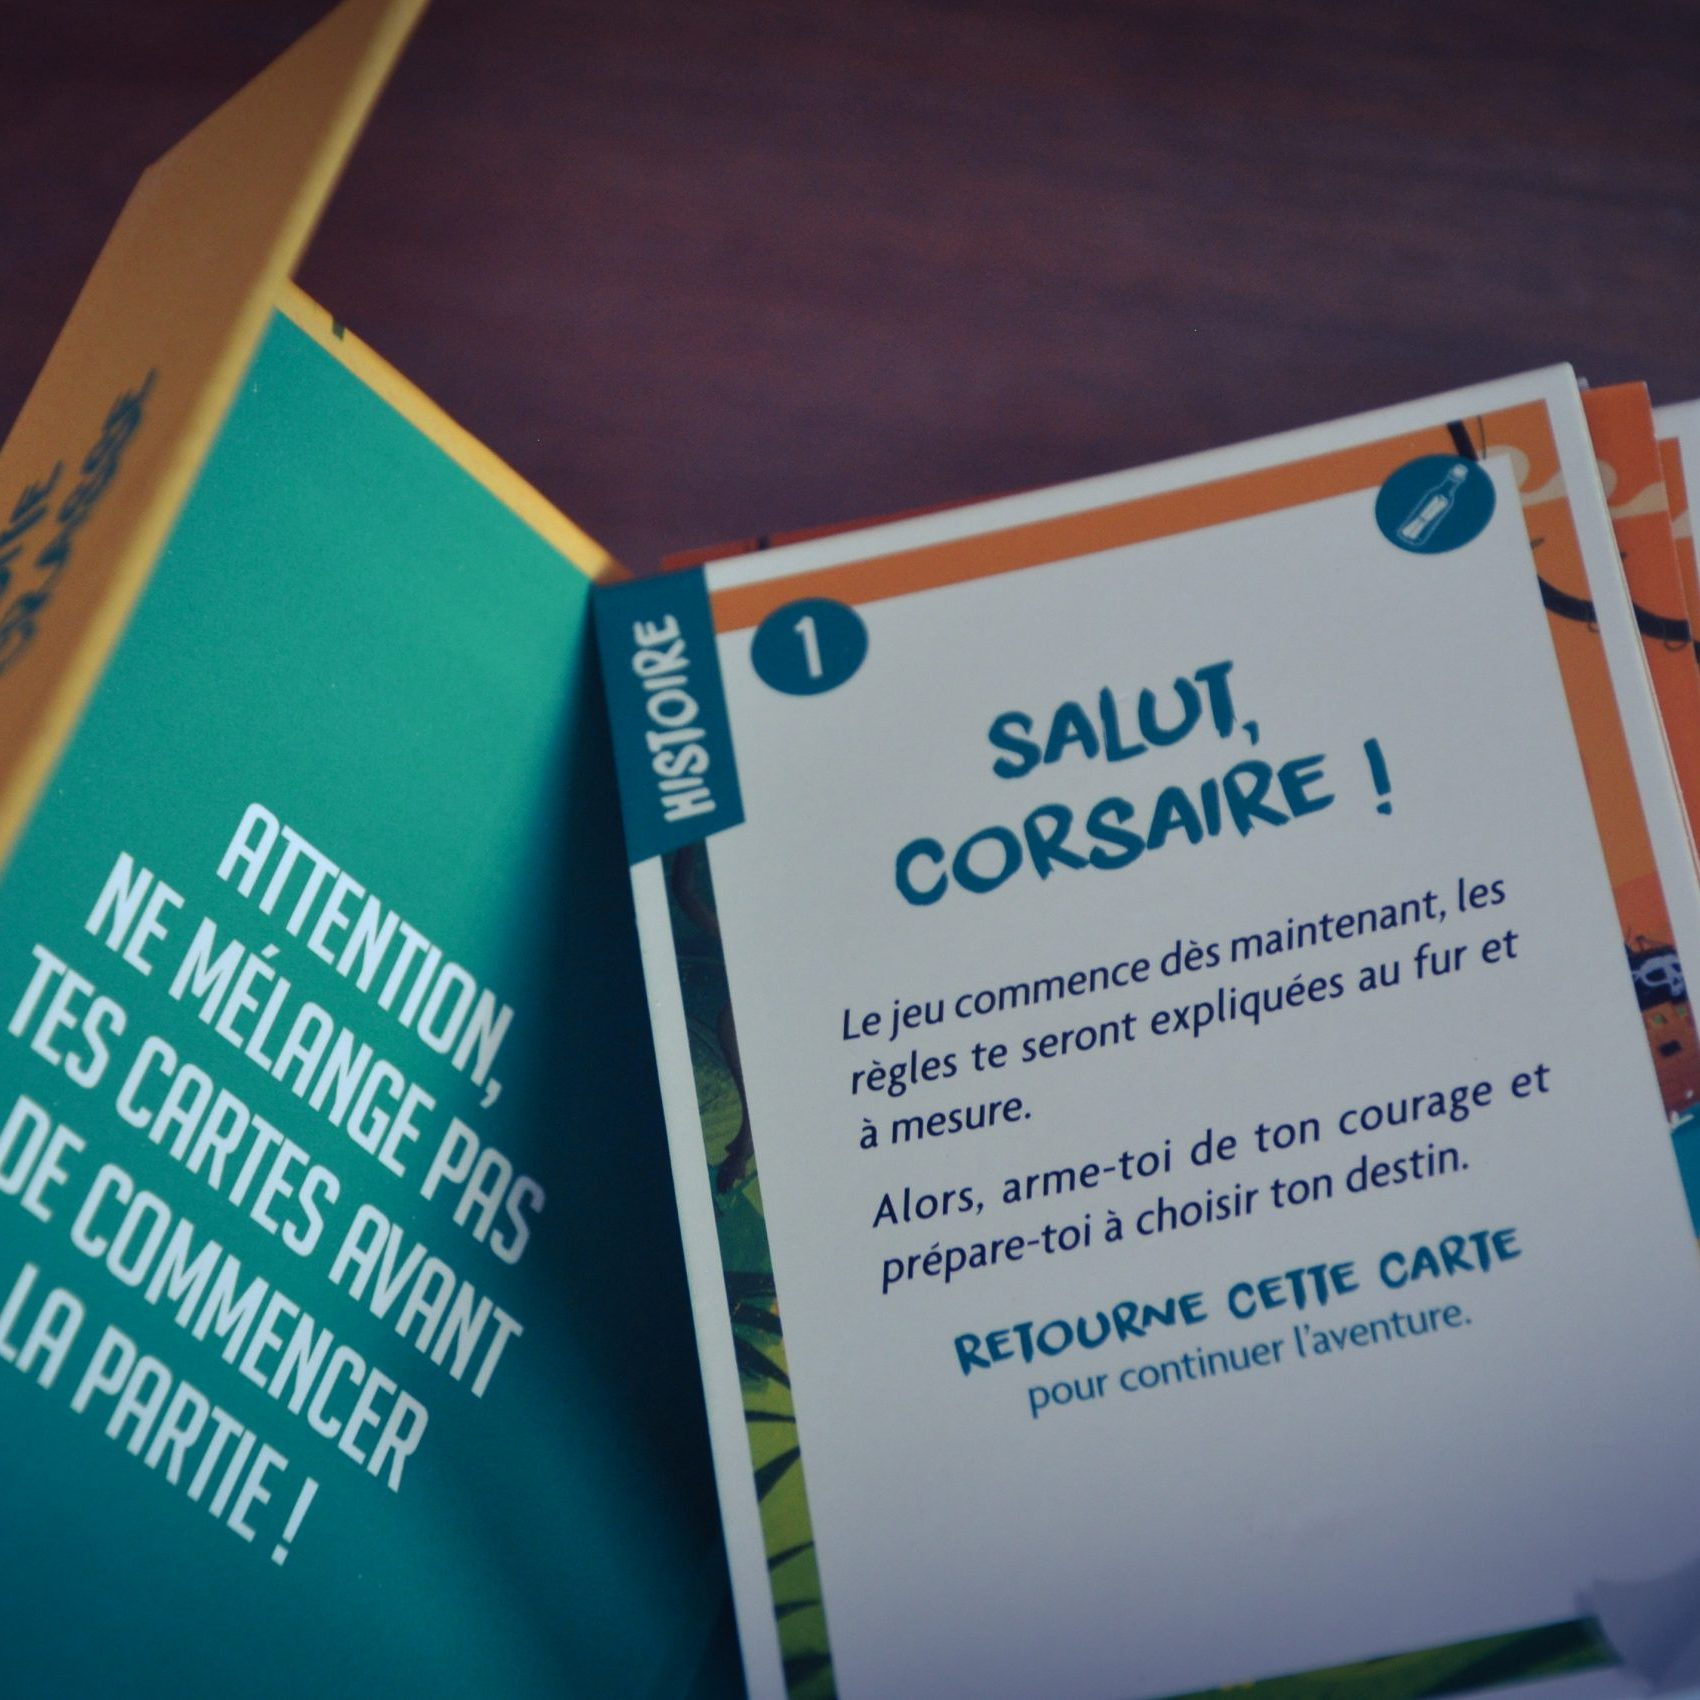 [Test] Héroï'cartes : A la poursuite de Barbe Crasse